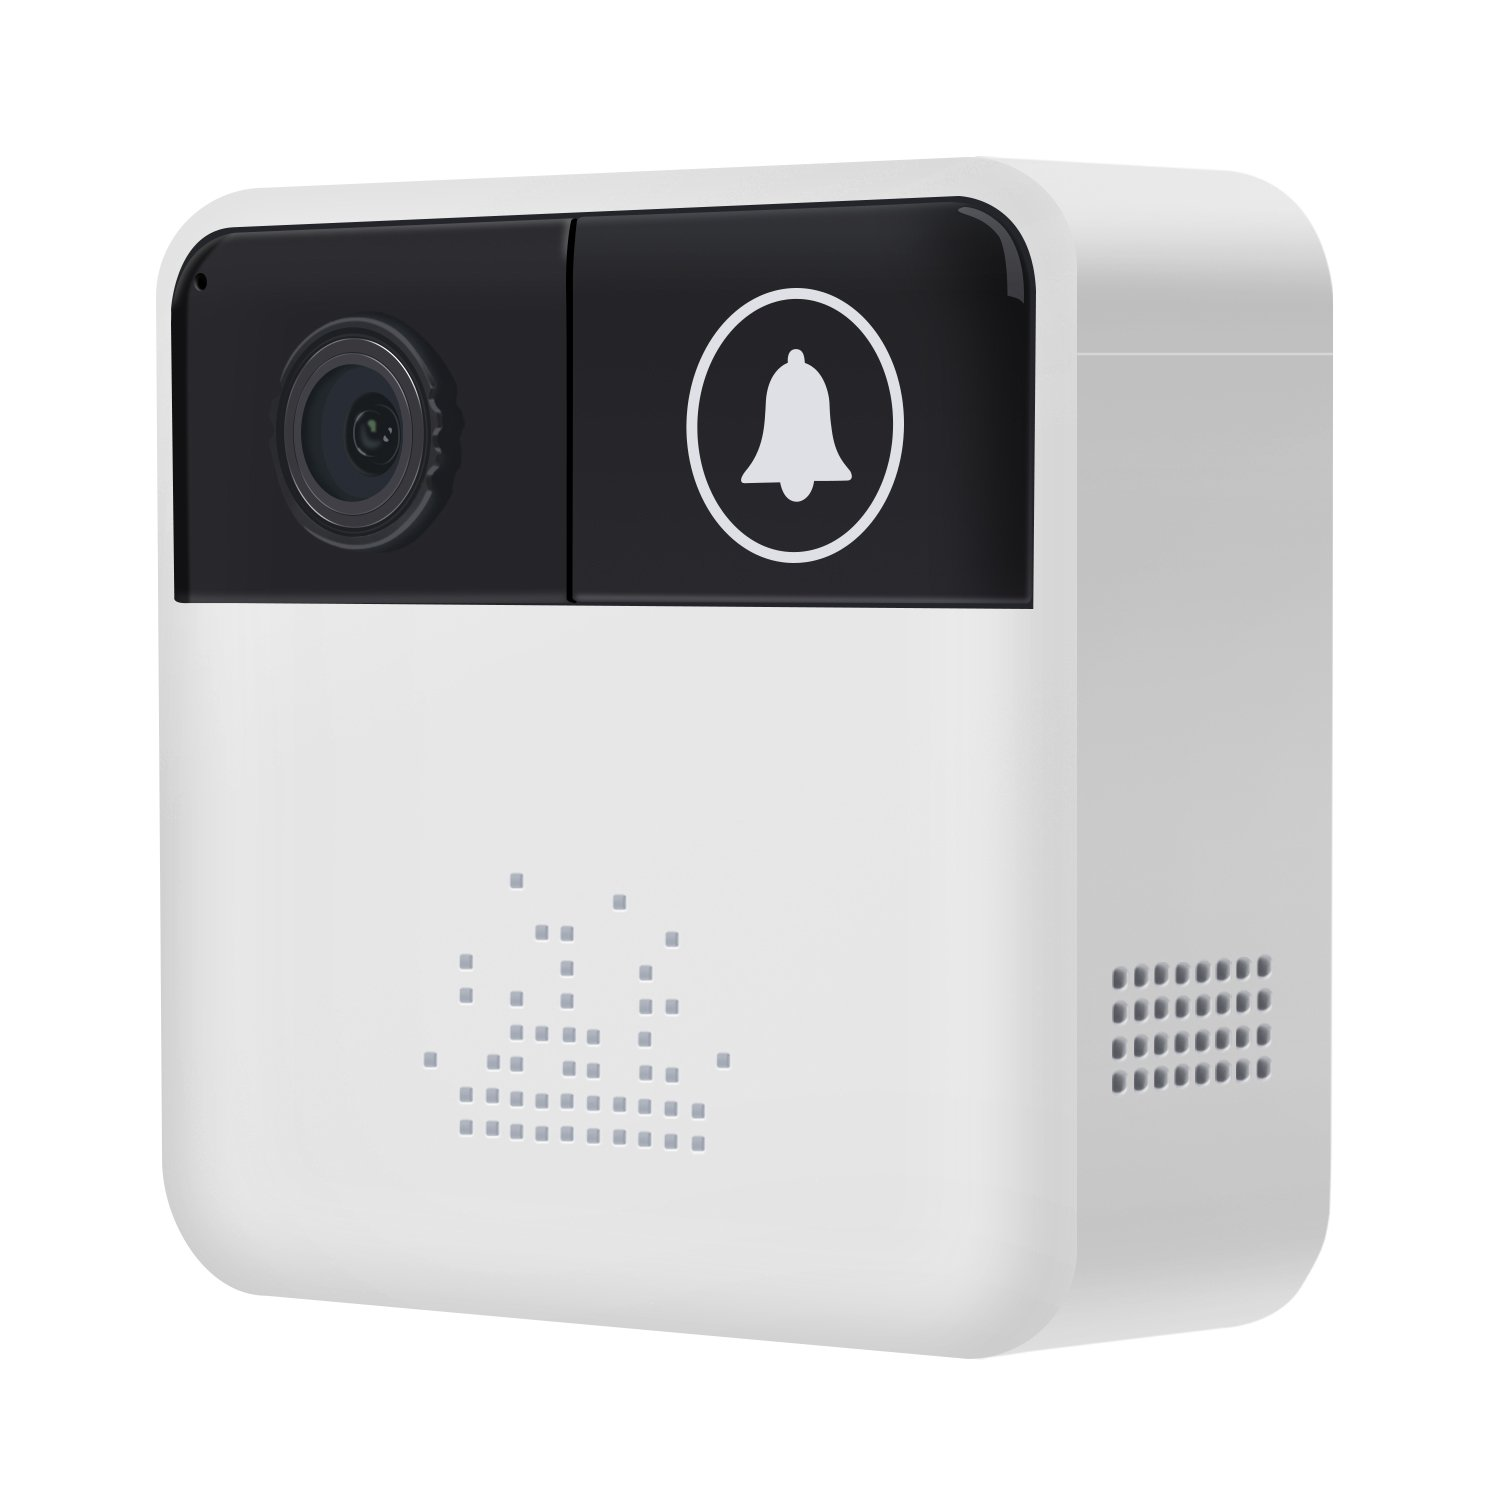 Smart Video Doorbell Wireless WiFi 720P Security Camera Mini Door Bells Real-Time Video Two-Way Talk, PIR Motion Detection, Night Vision App Control for iOS and Android